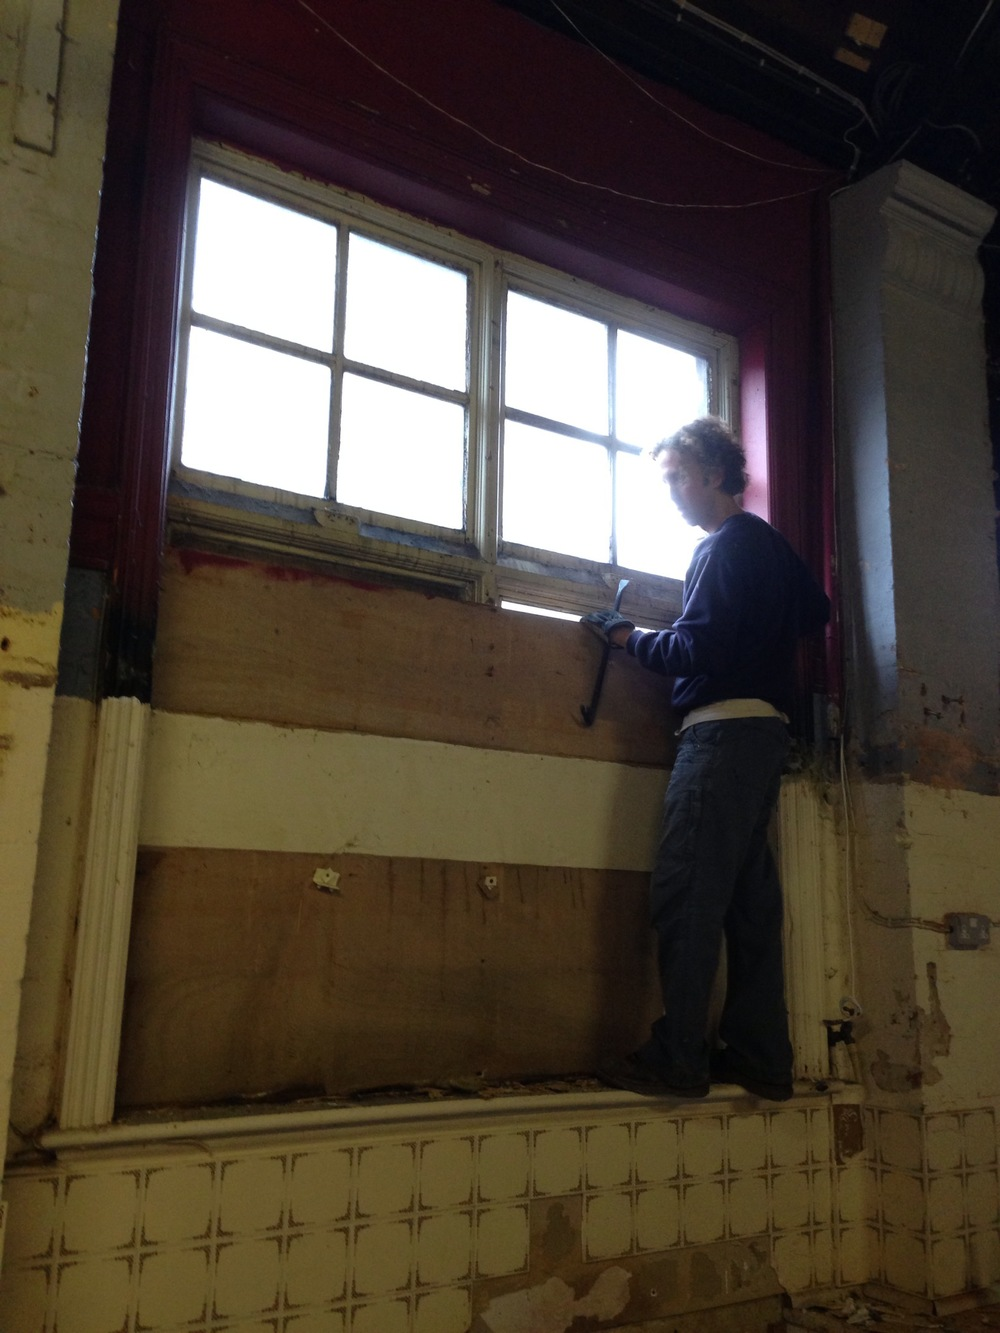 Un-boarding the window to let the fist bit of natural light into The Hall for 60 years.